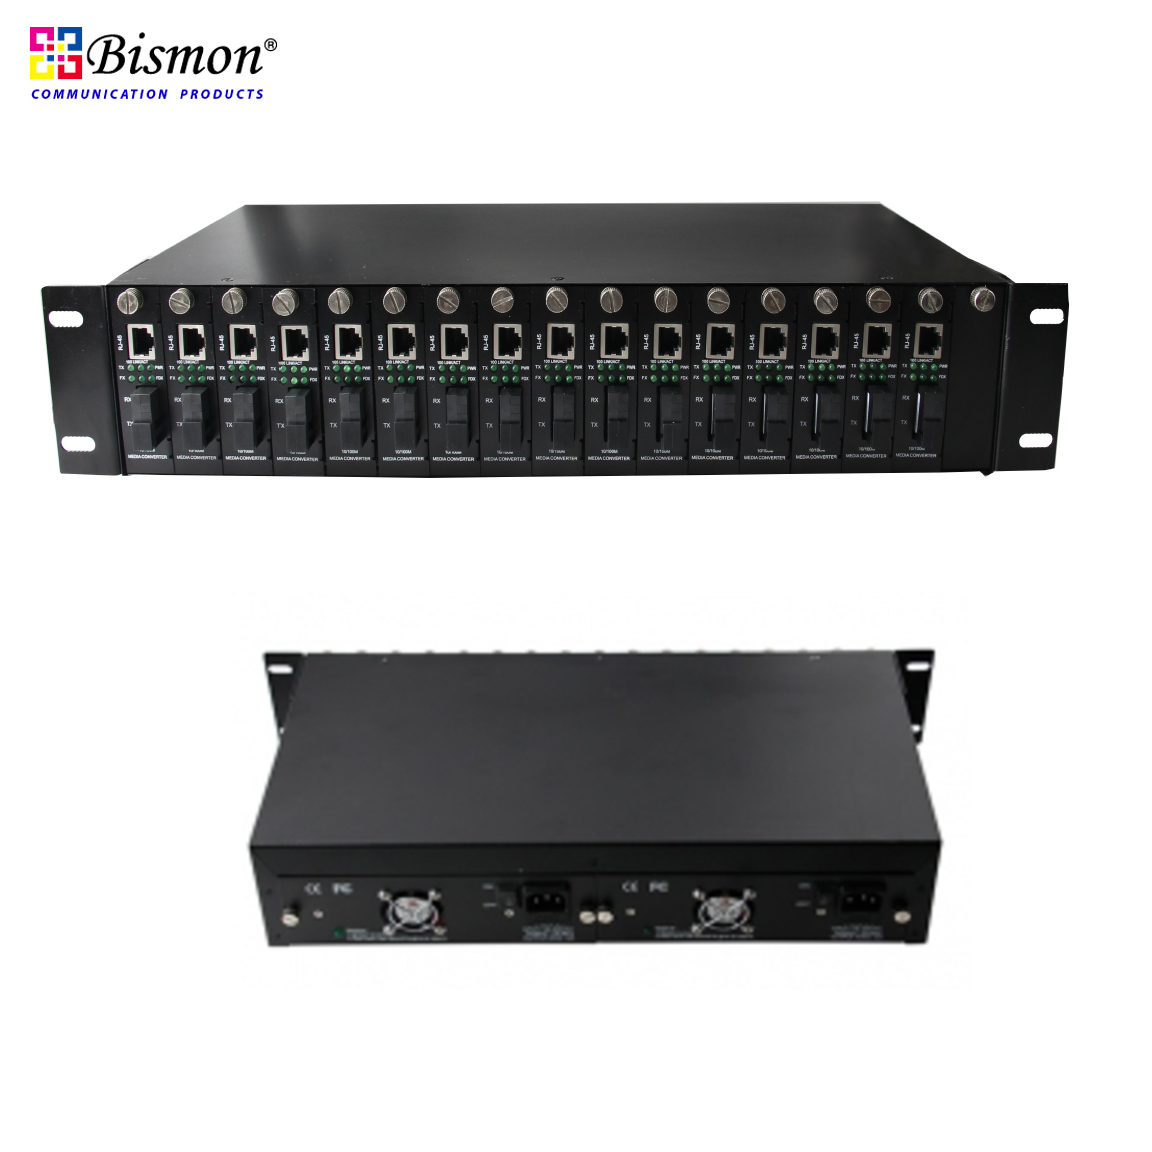 16-Slot-19-Rack-Chassis-Media-Converter-Double-Power-Supply